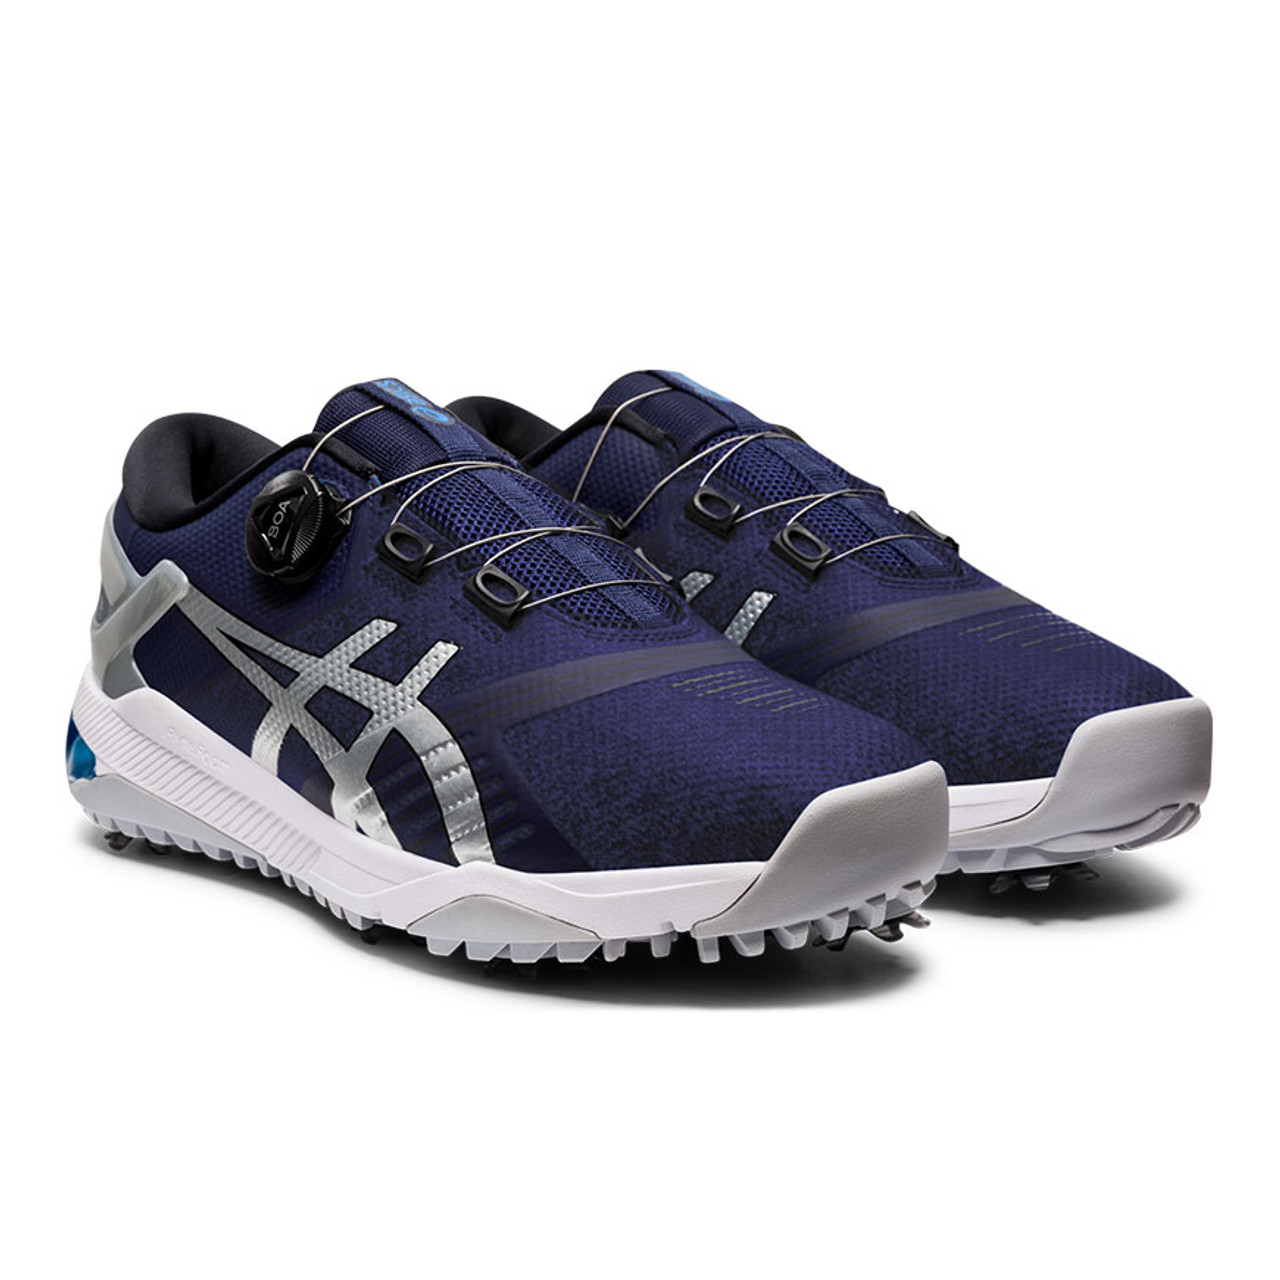 Asics Gel-Course Duo Boa Golf Shoes - Navy / White / Silver